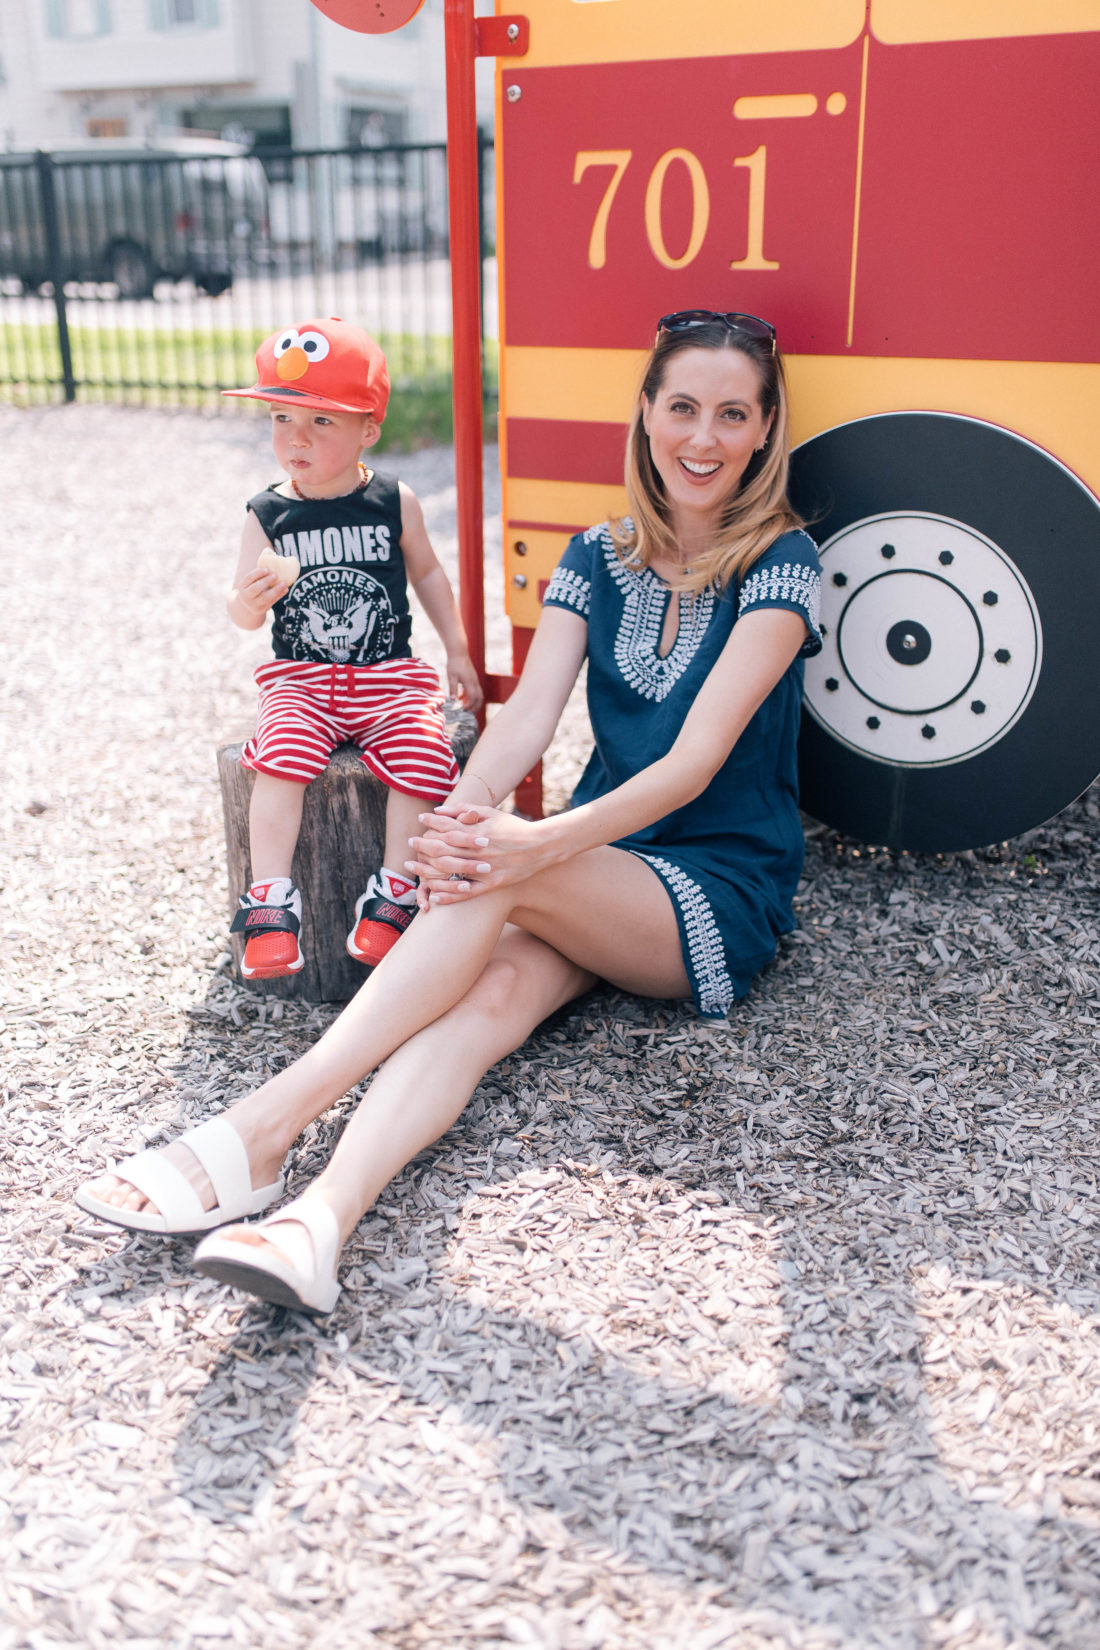 Eva Amurri Martino sits on the ground wearing a navy blue dress, while son Major snacks on a stool next to her